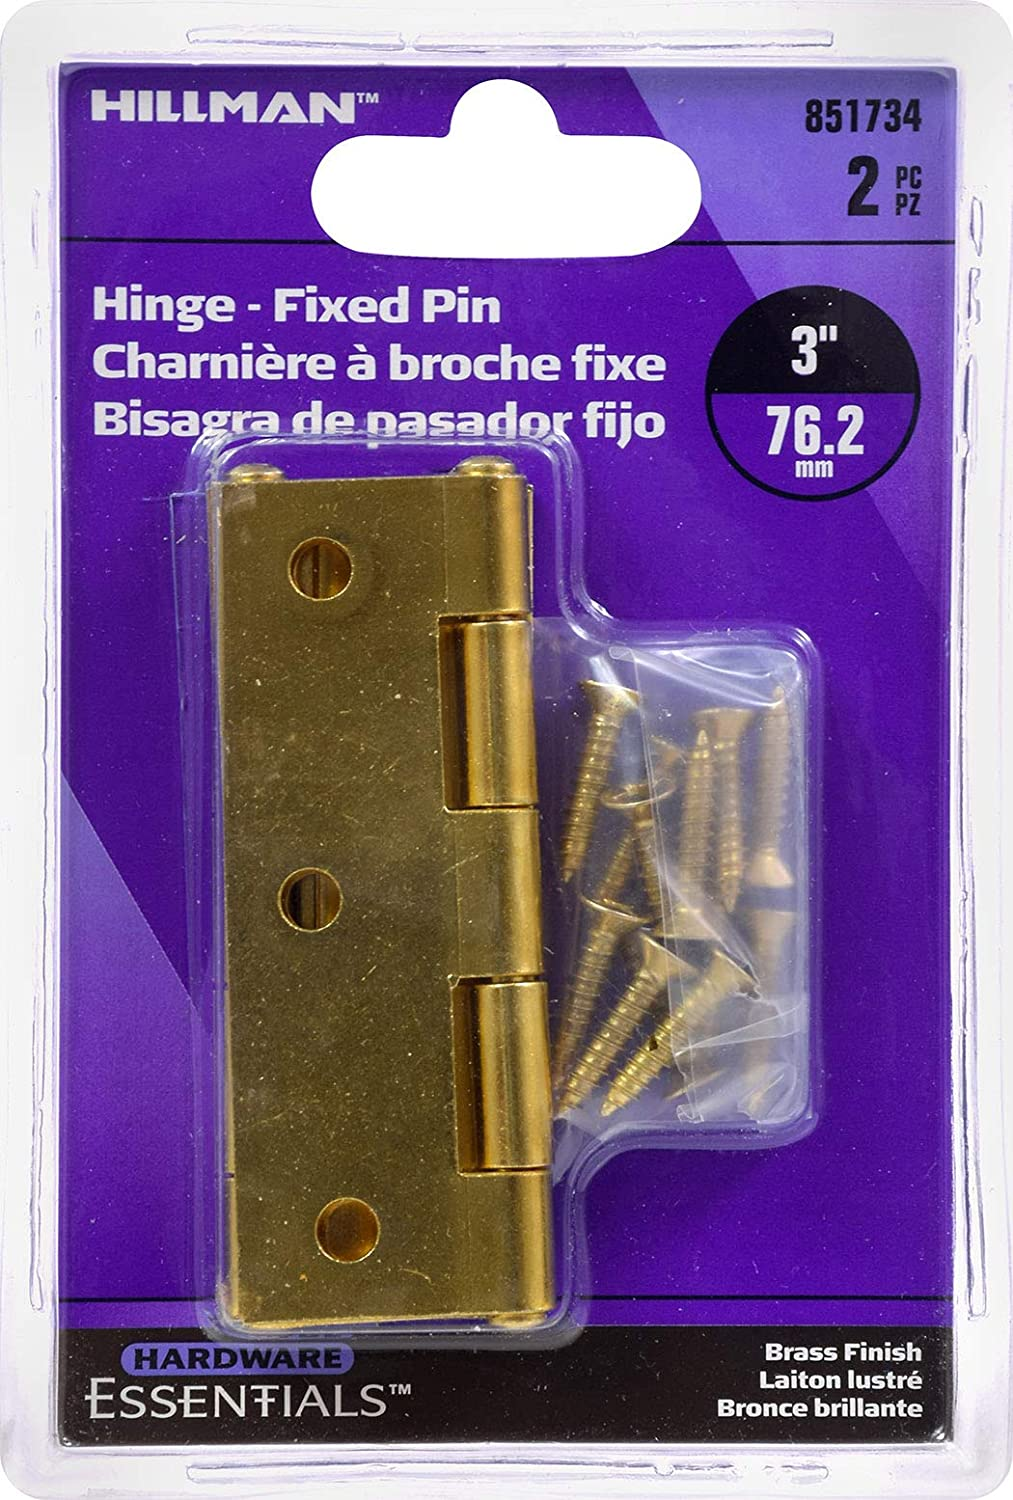 Hillman Hardware Essentials 851734 Light Narrow Door Hinges and Fixed Pin Brass 3-2 pack